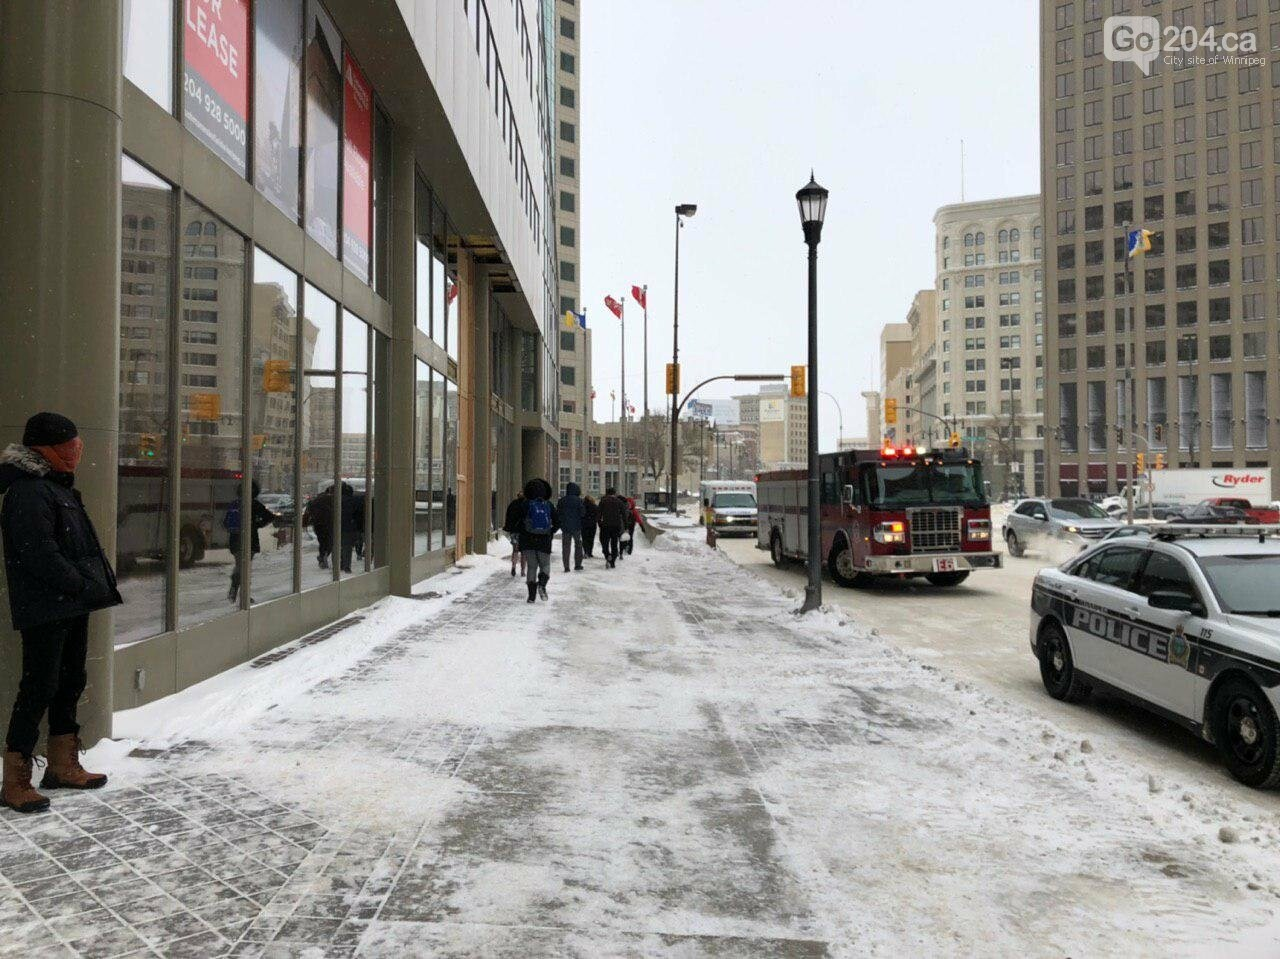 Gas leaking occurred on 360 Main St, Winnipeg, photo-1